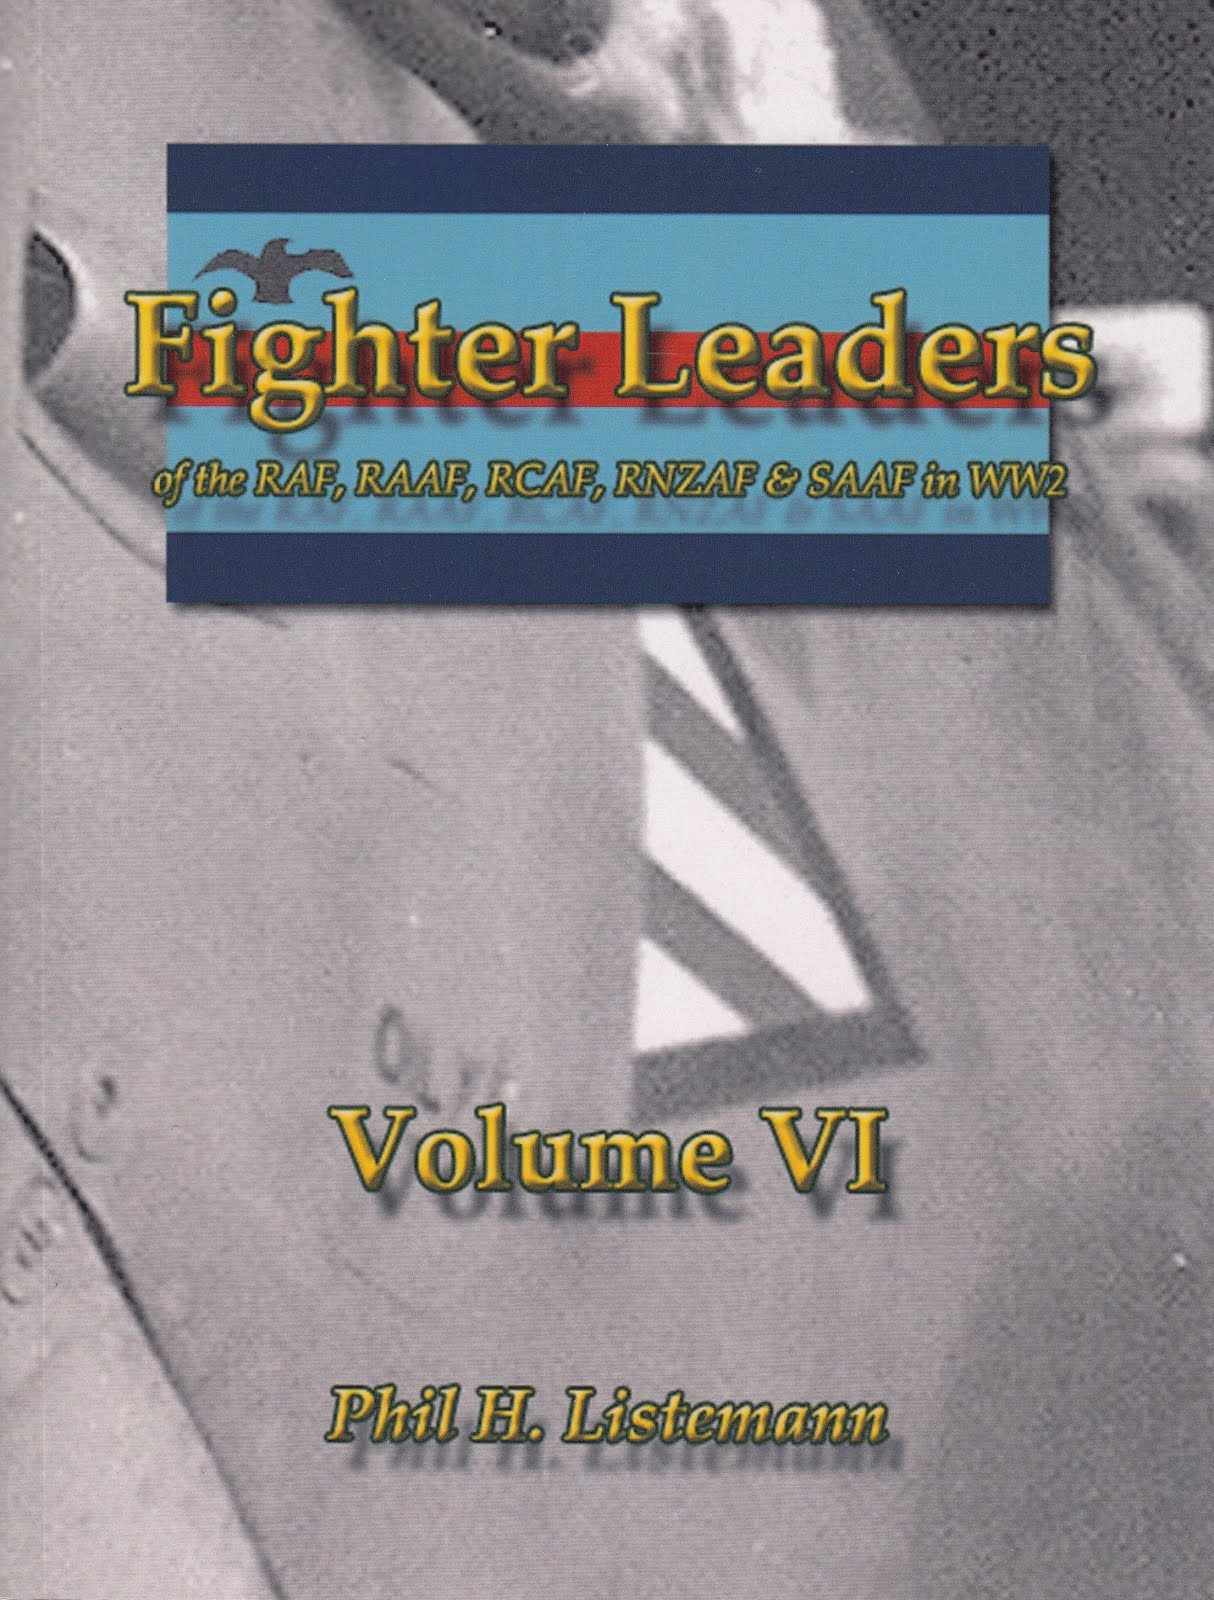 Fighter Leaders VI